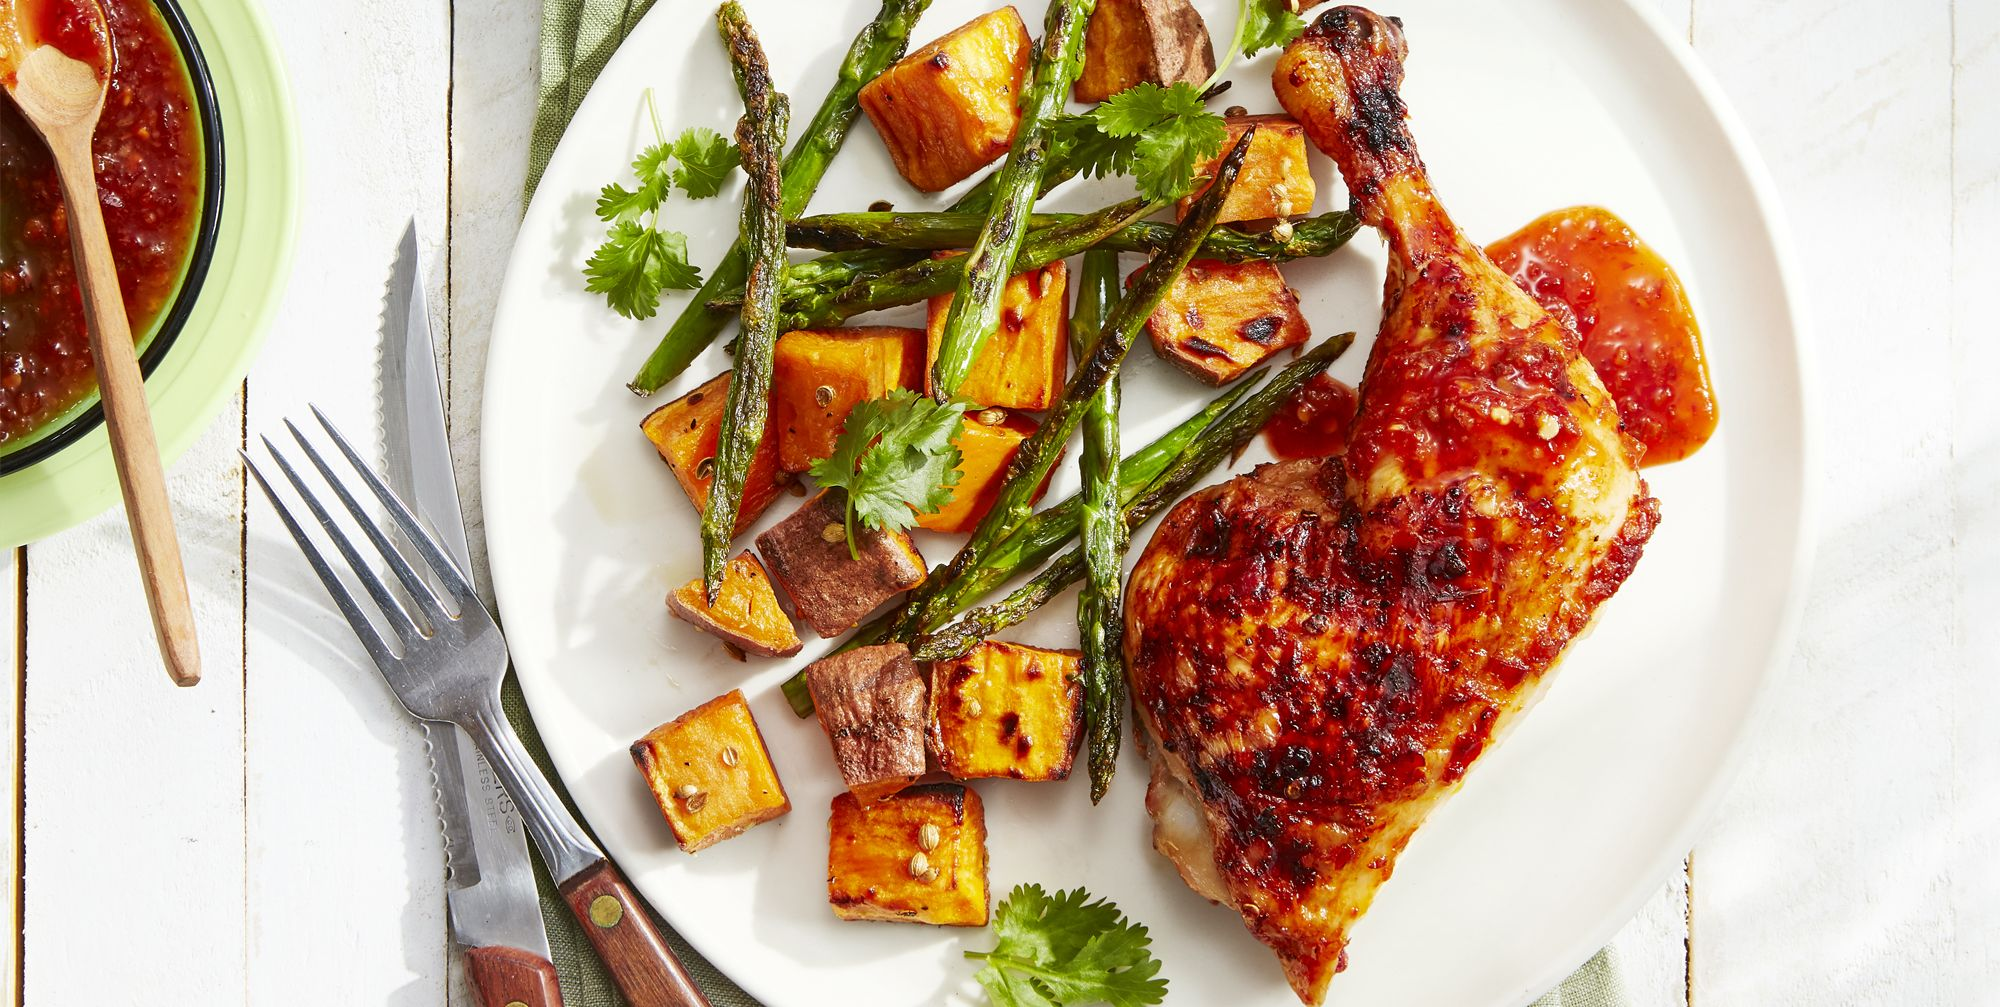 Sweet-and-Spicy Chicken With Roasted Sweet Potatoes and Asparagus